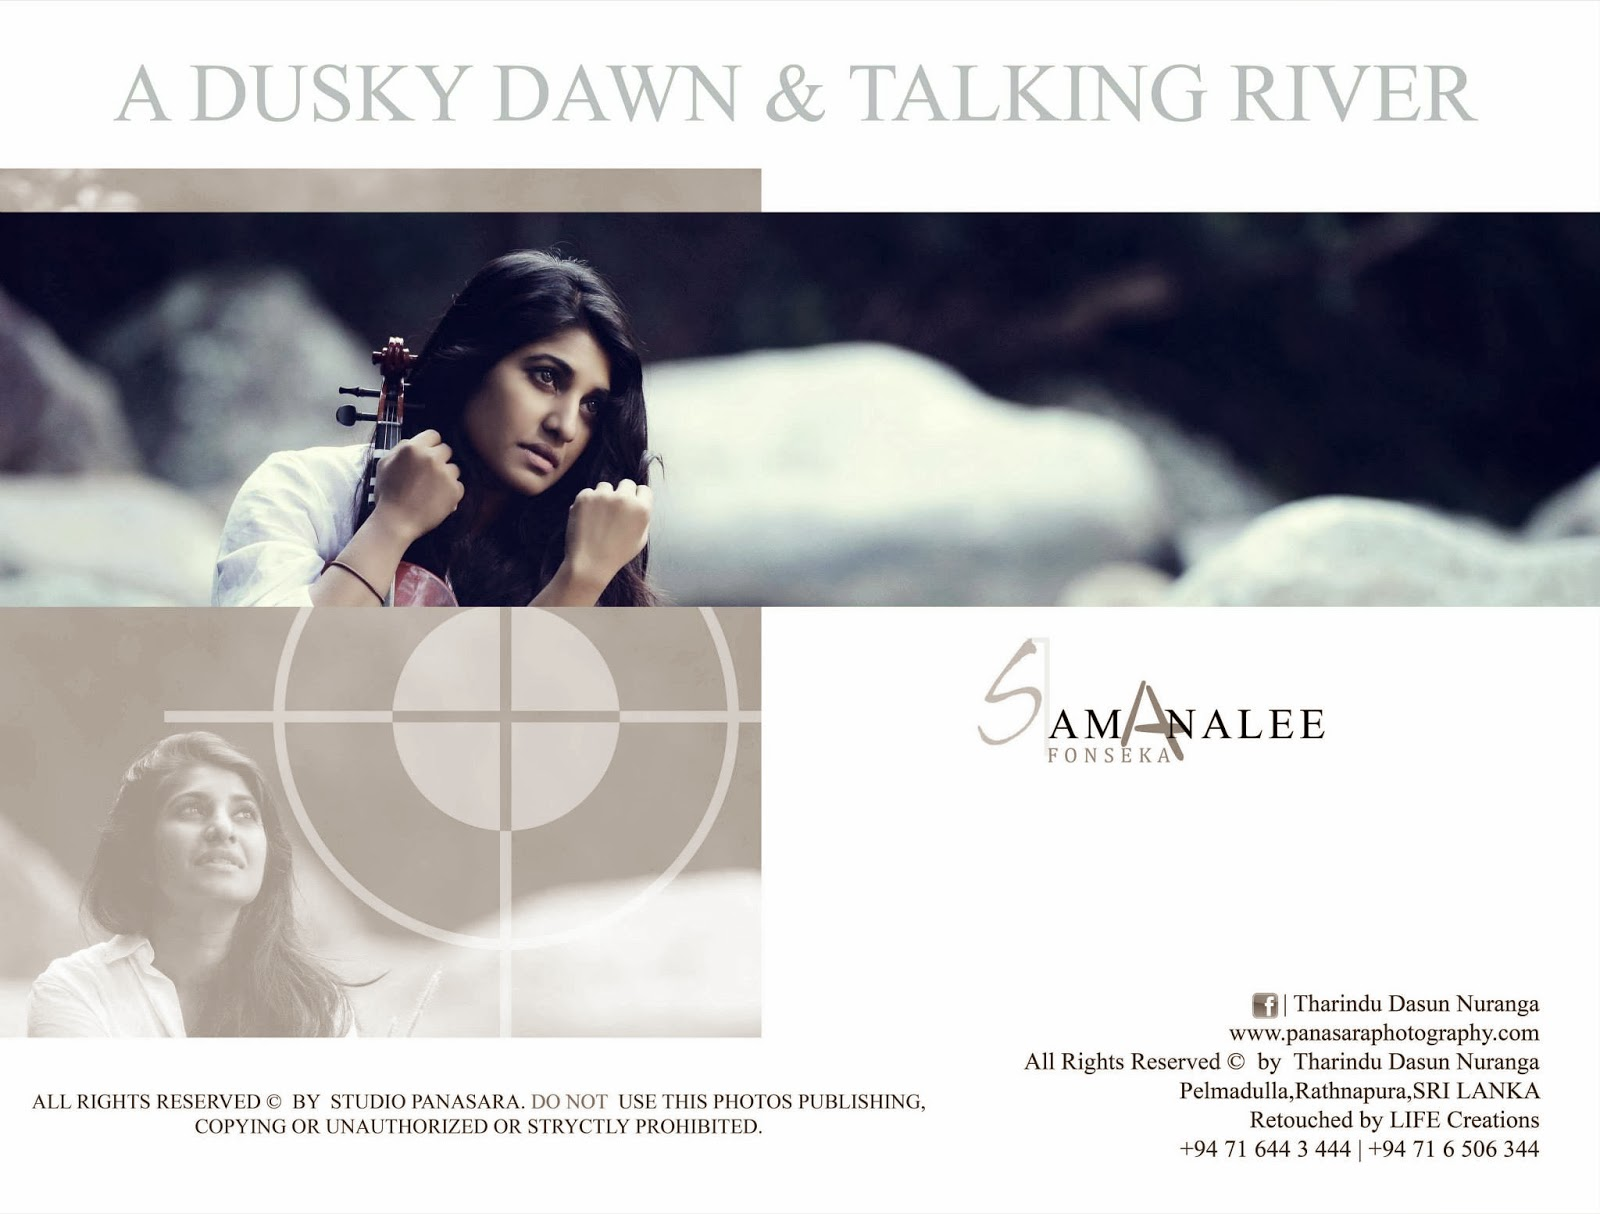 A DUSKY DAWN & TALKING RIVER